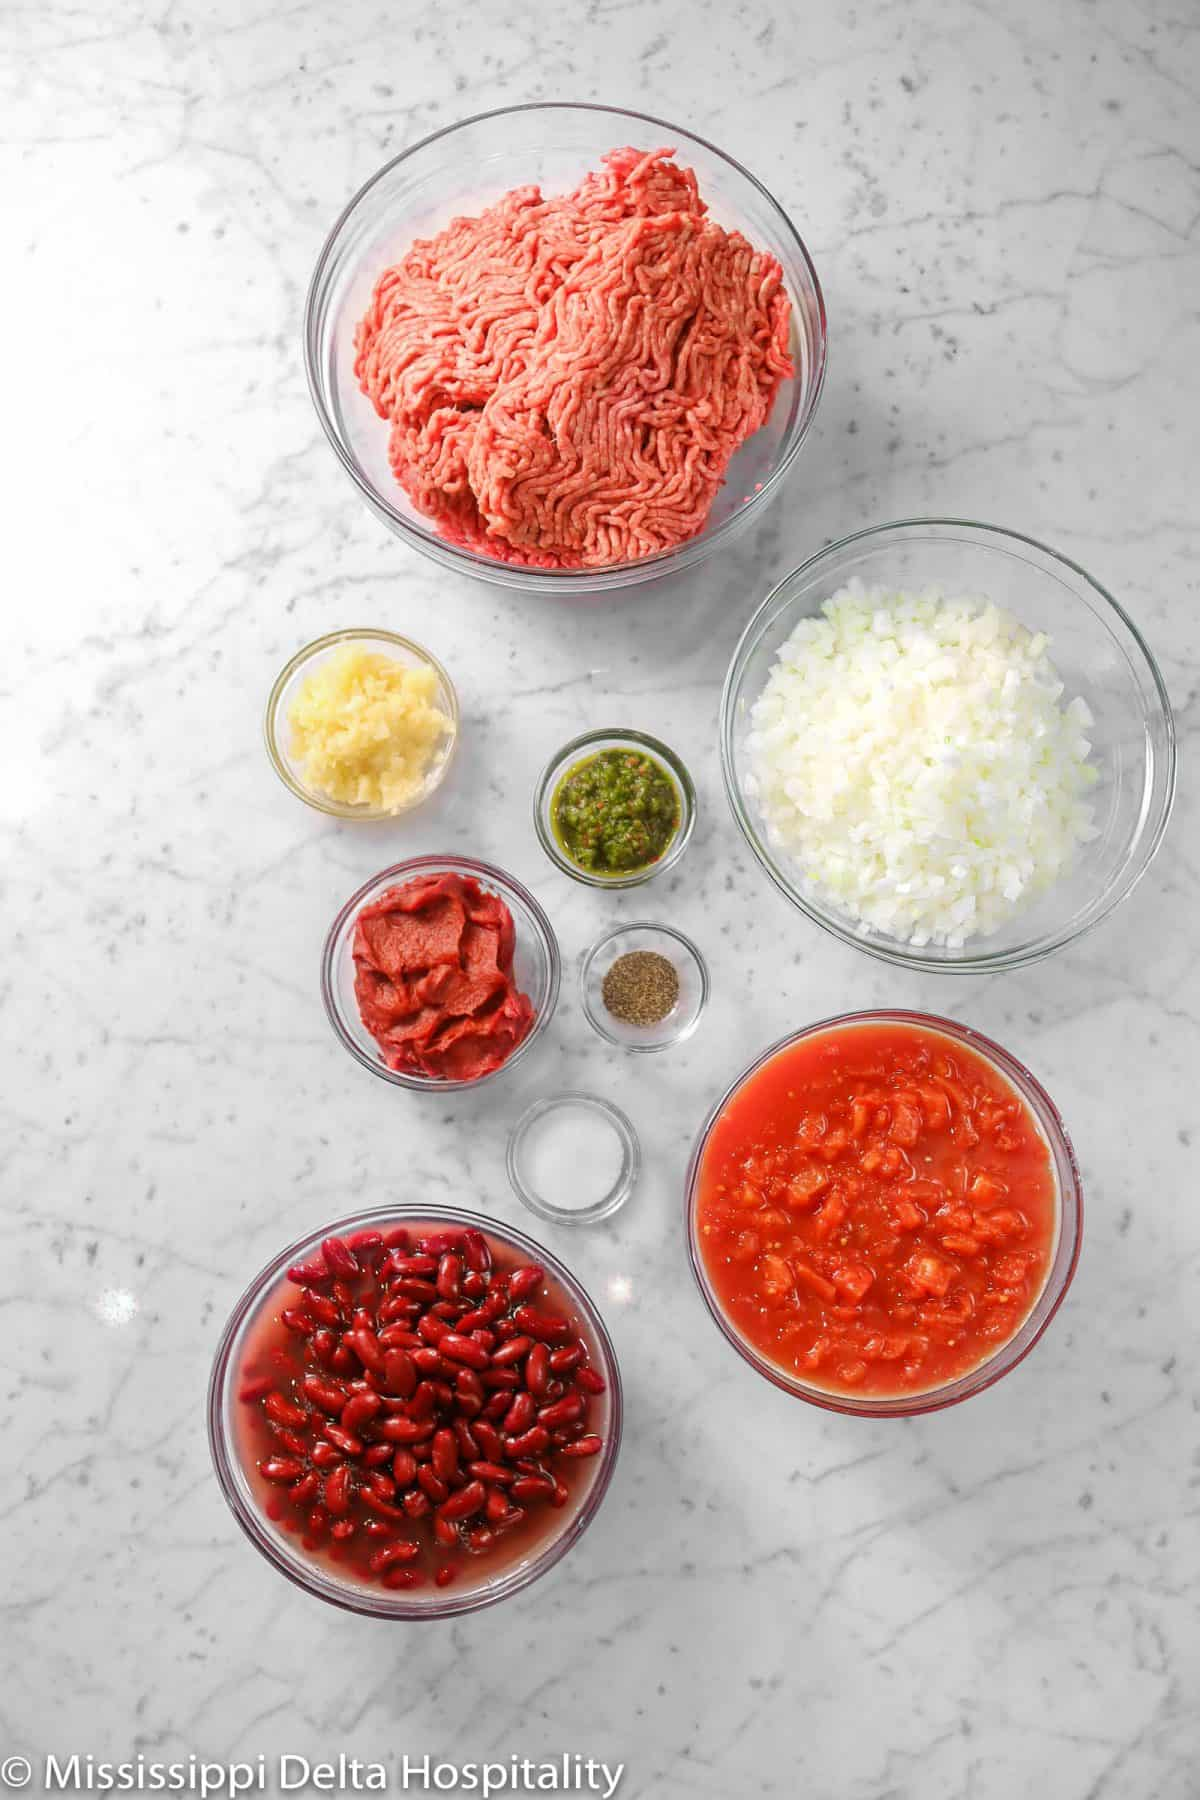 ingredients for chili on a marble table